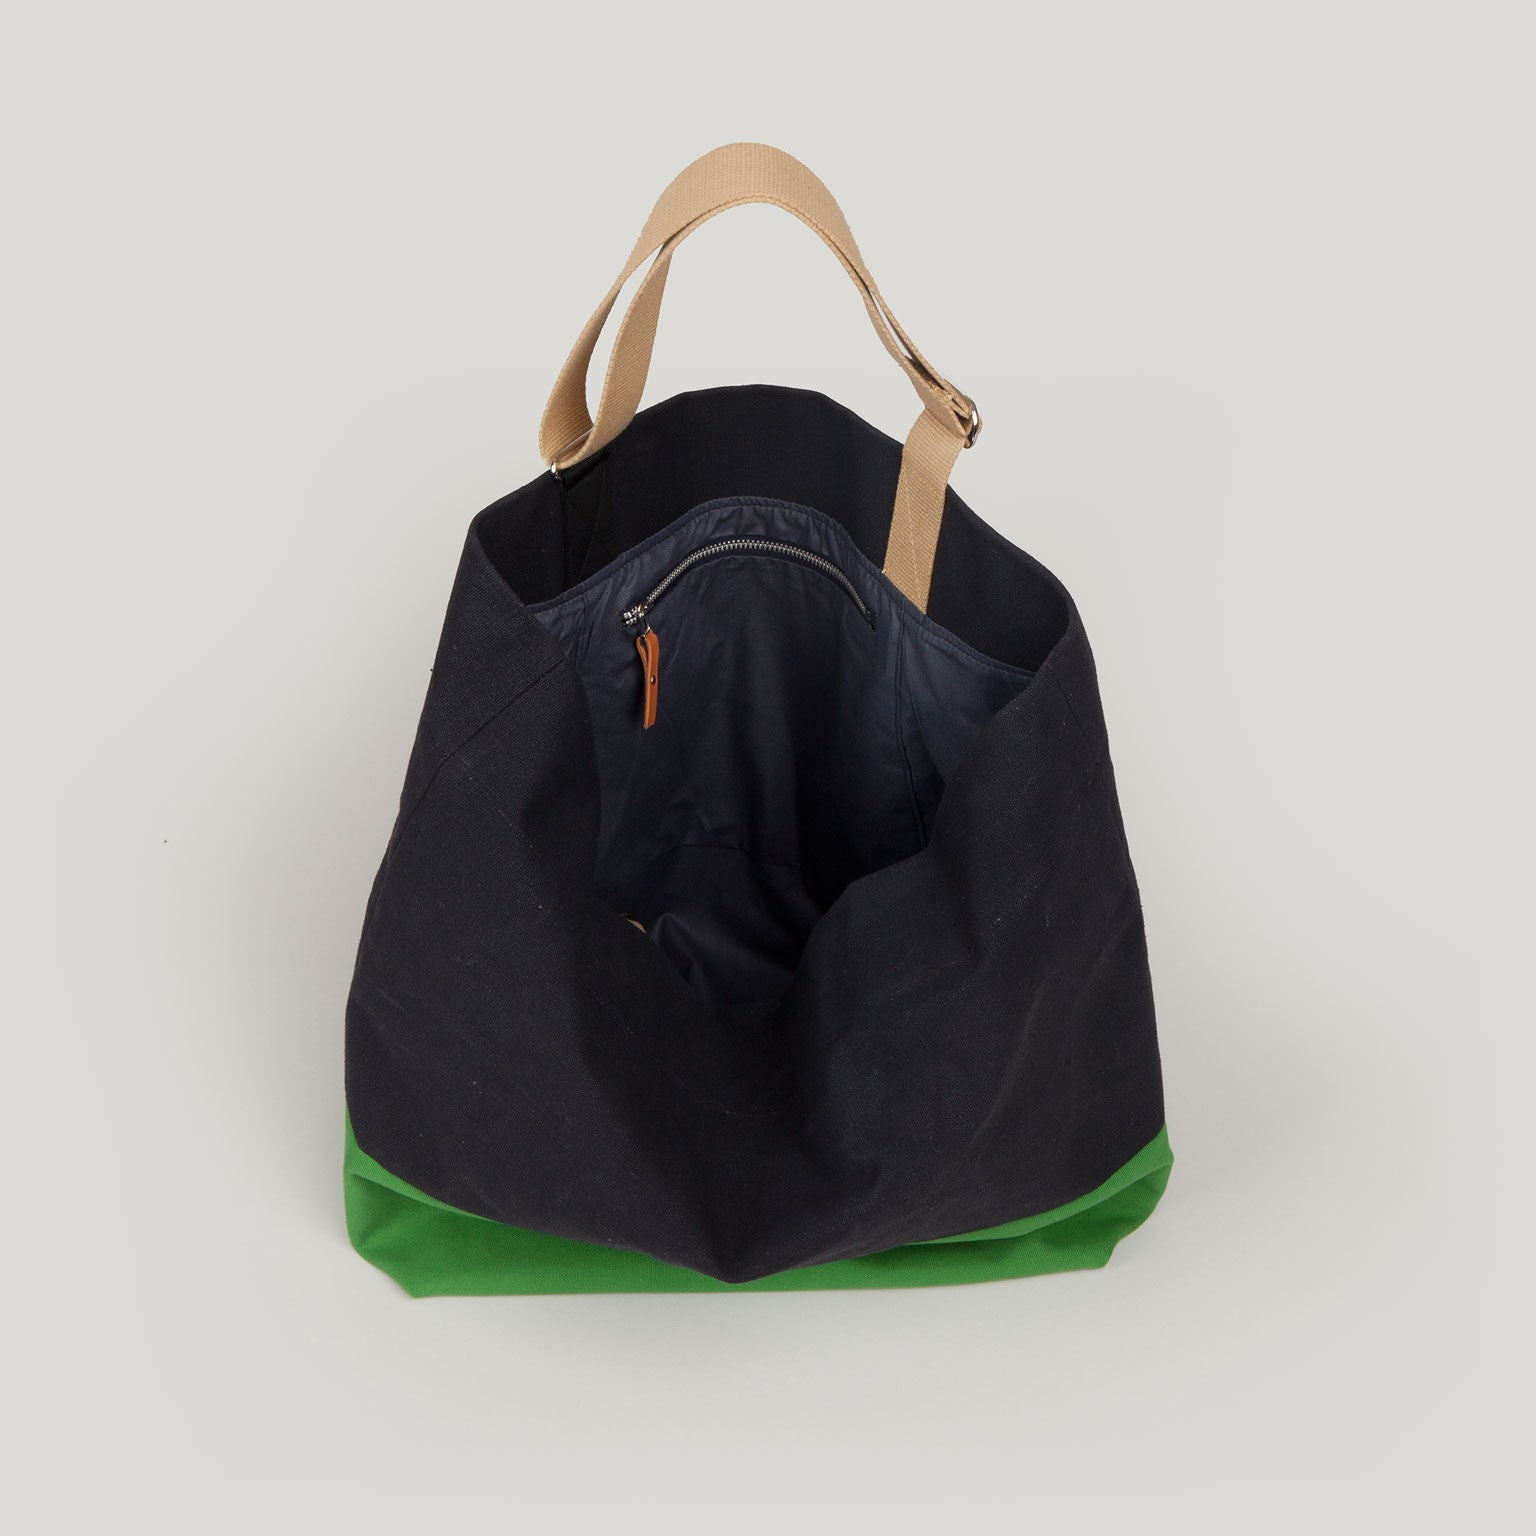 FRIDA Tote - black & apple green